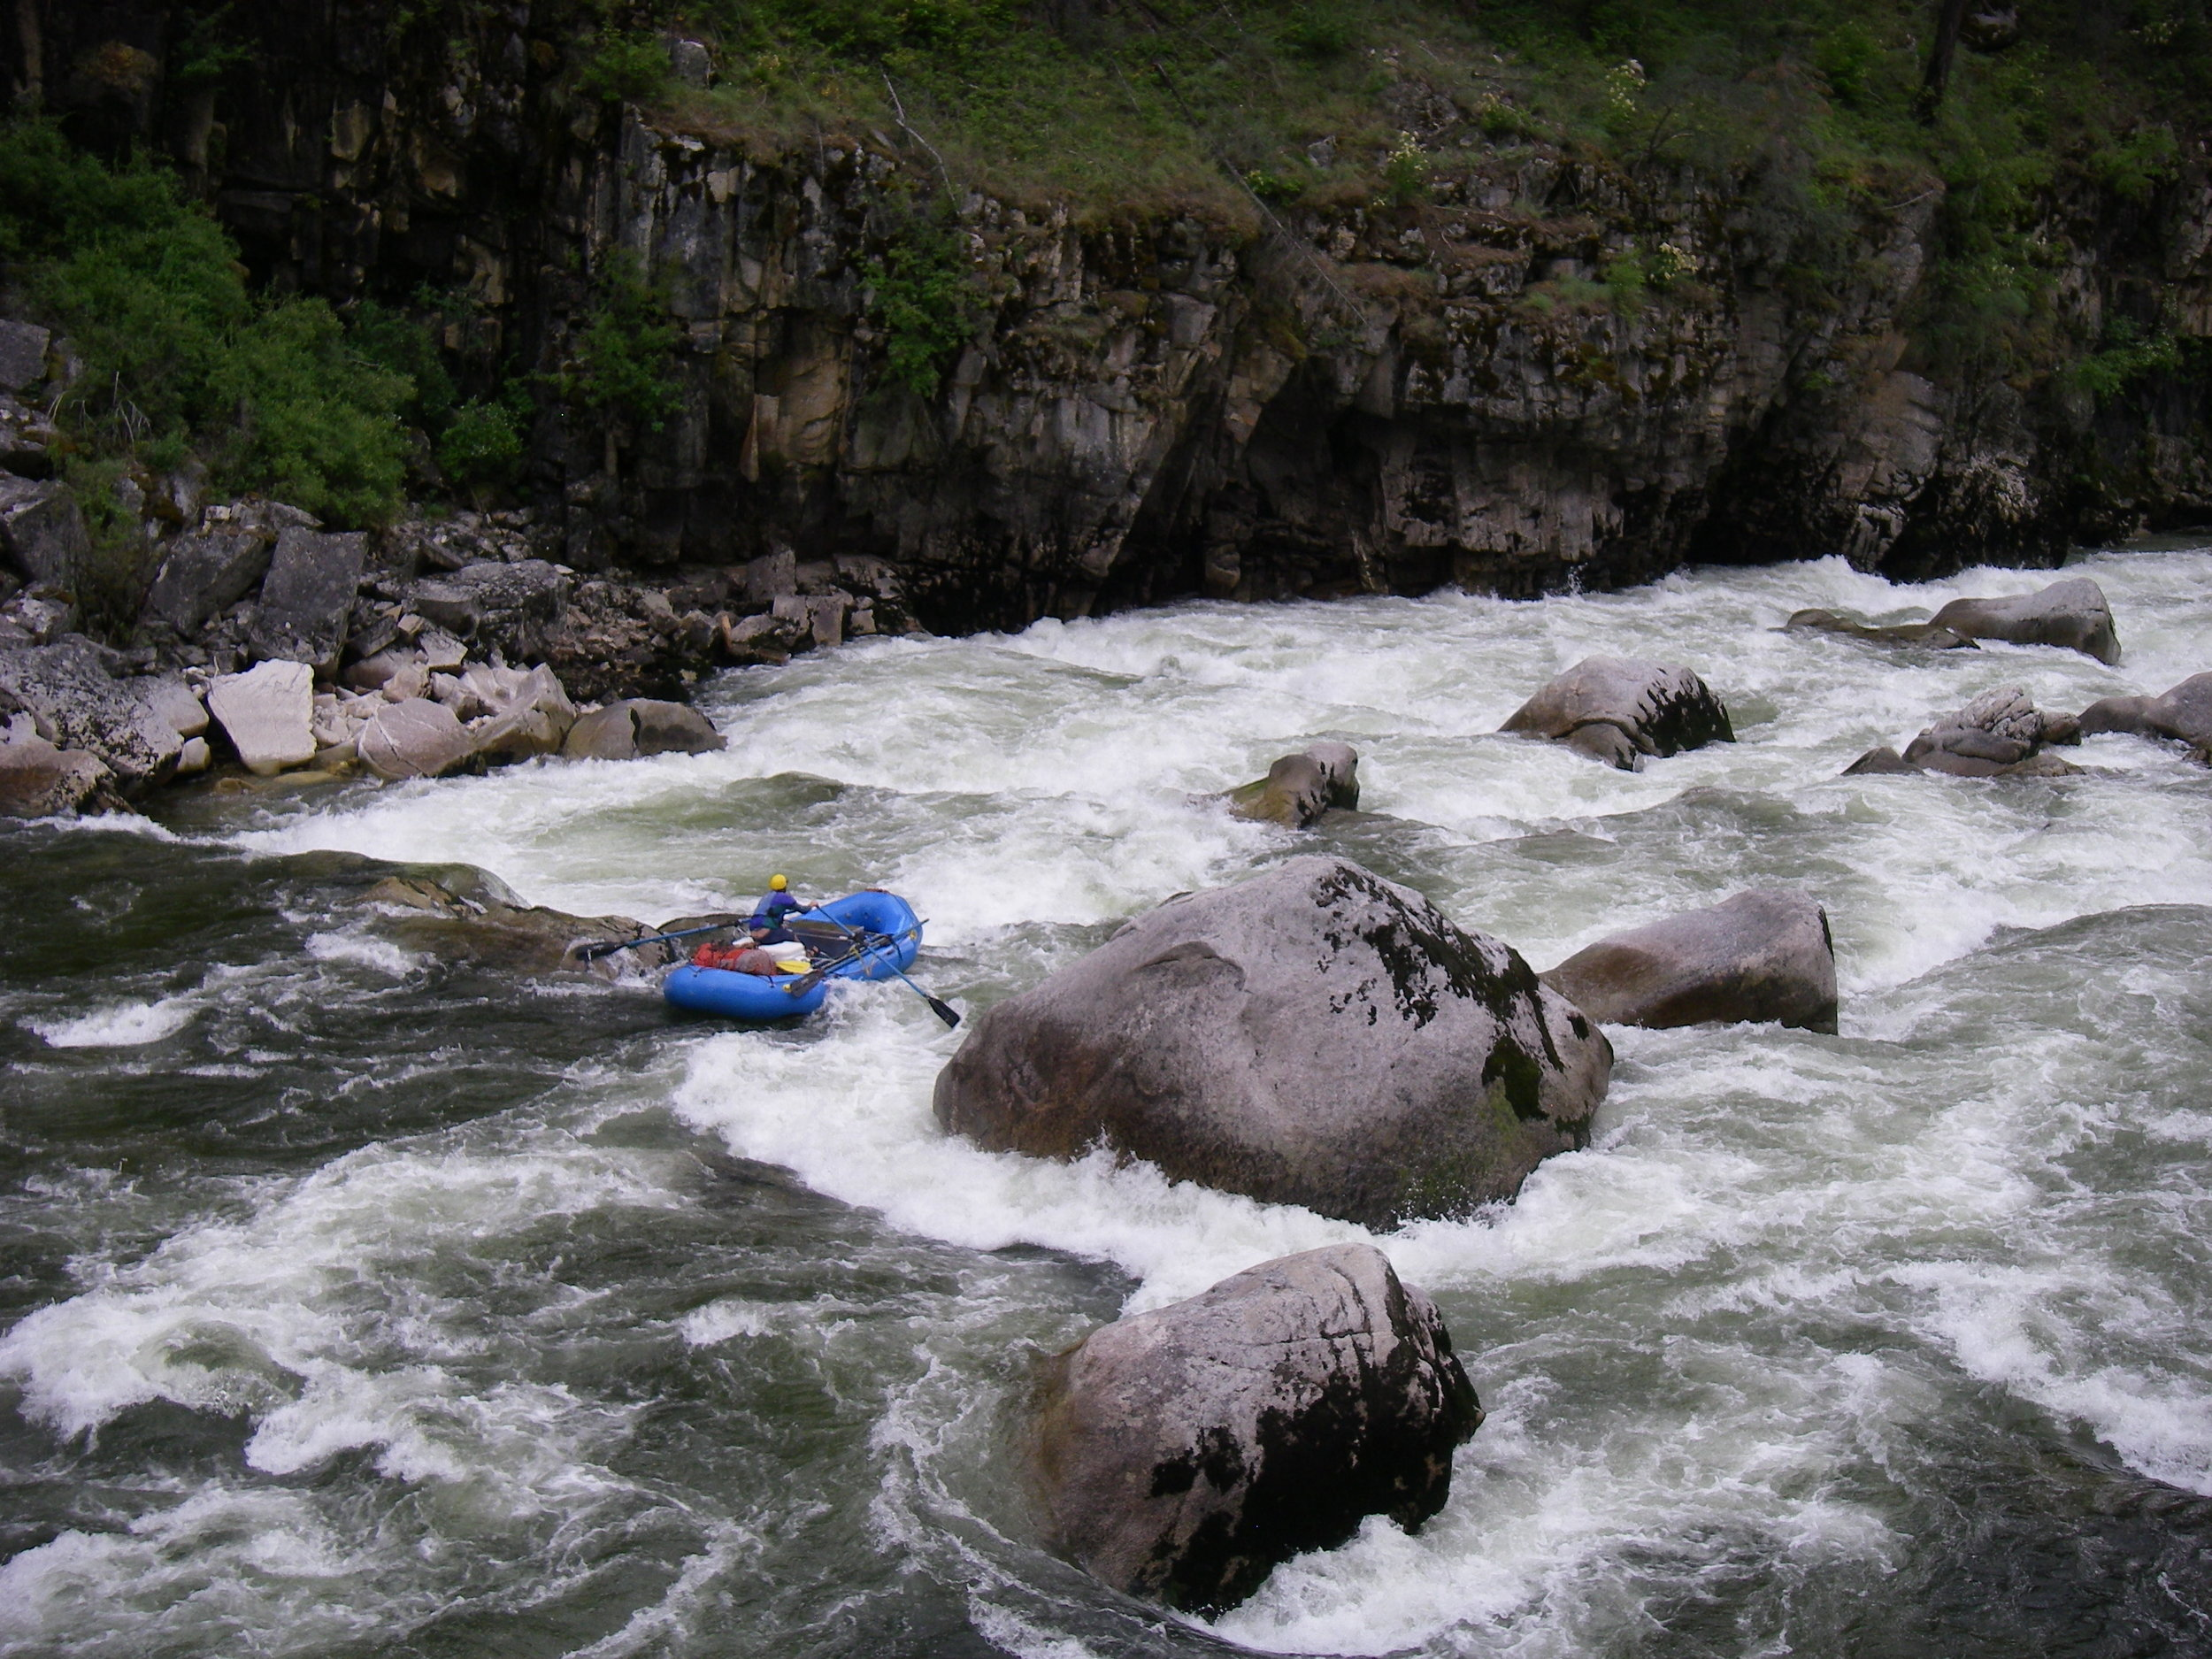 Fall Creek Rapid on the South Fork of the Salmon River, one of the river's outstanding Class V rapids. Photo by Scott Acker.